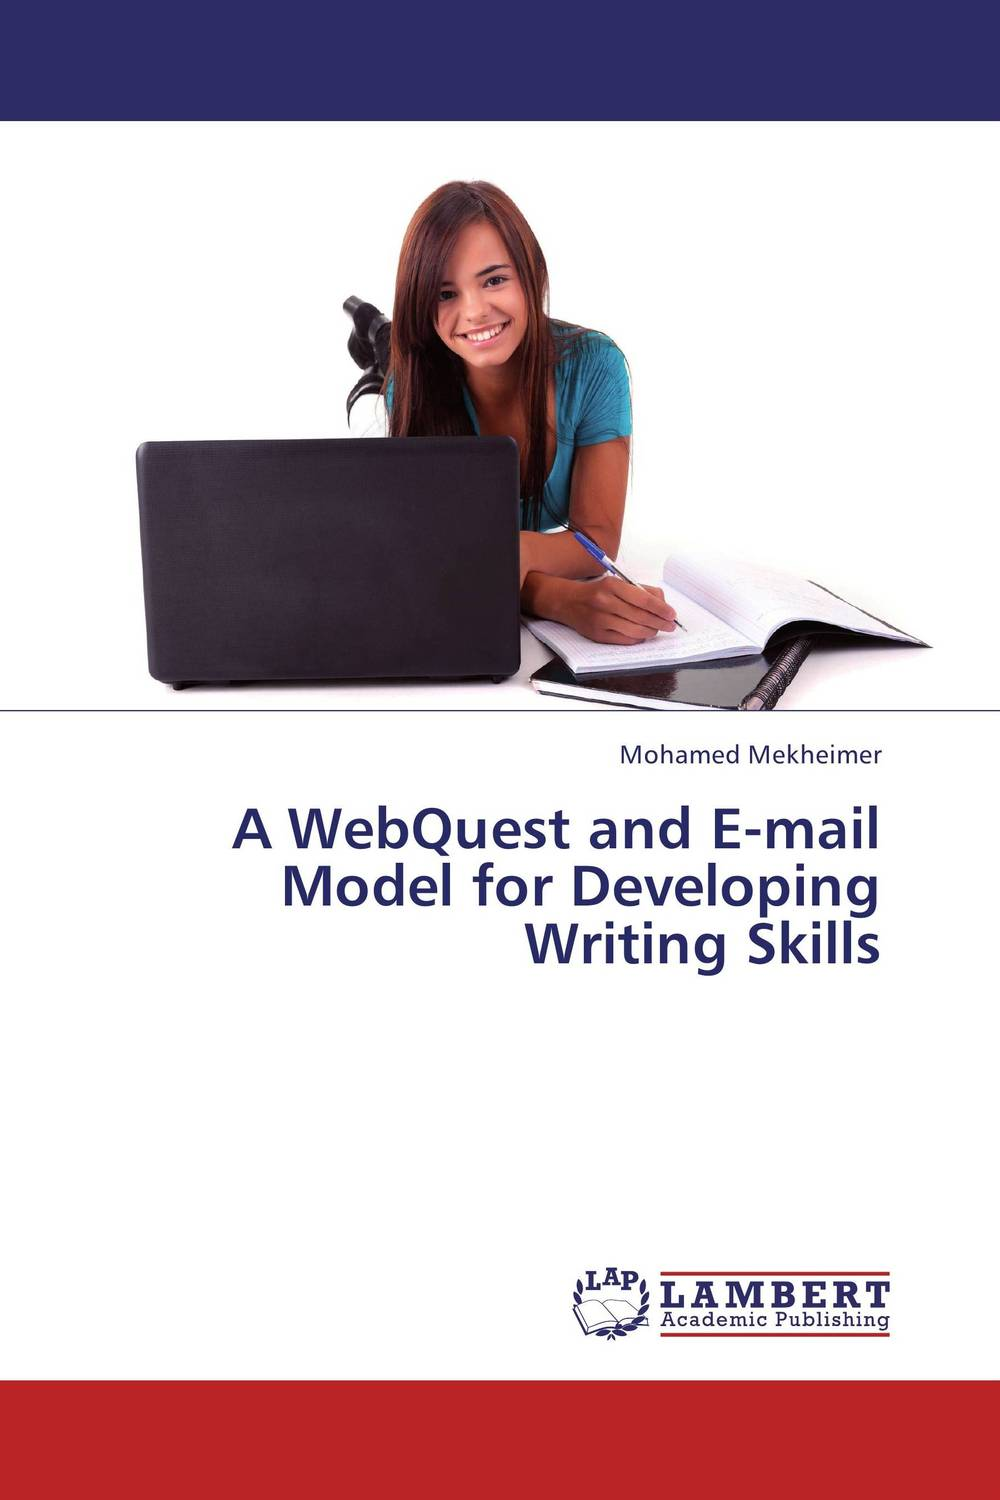 A WebQuest and E-mail Model for Developing Writing Skills